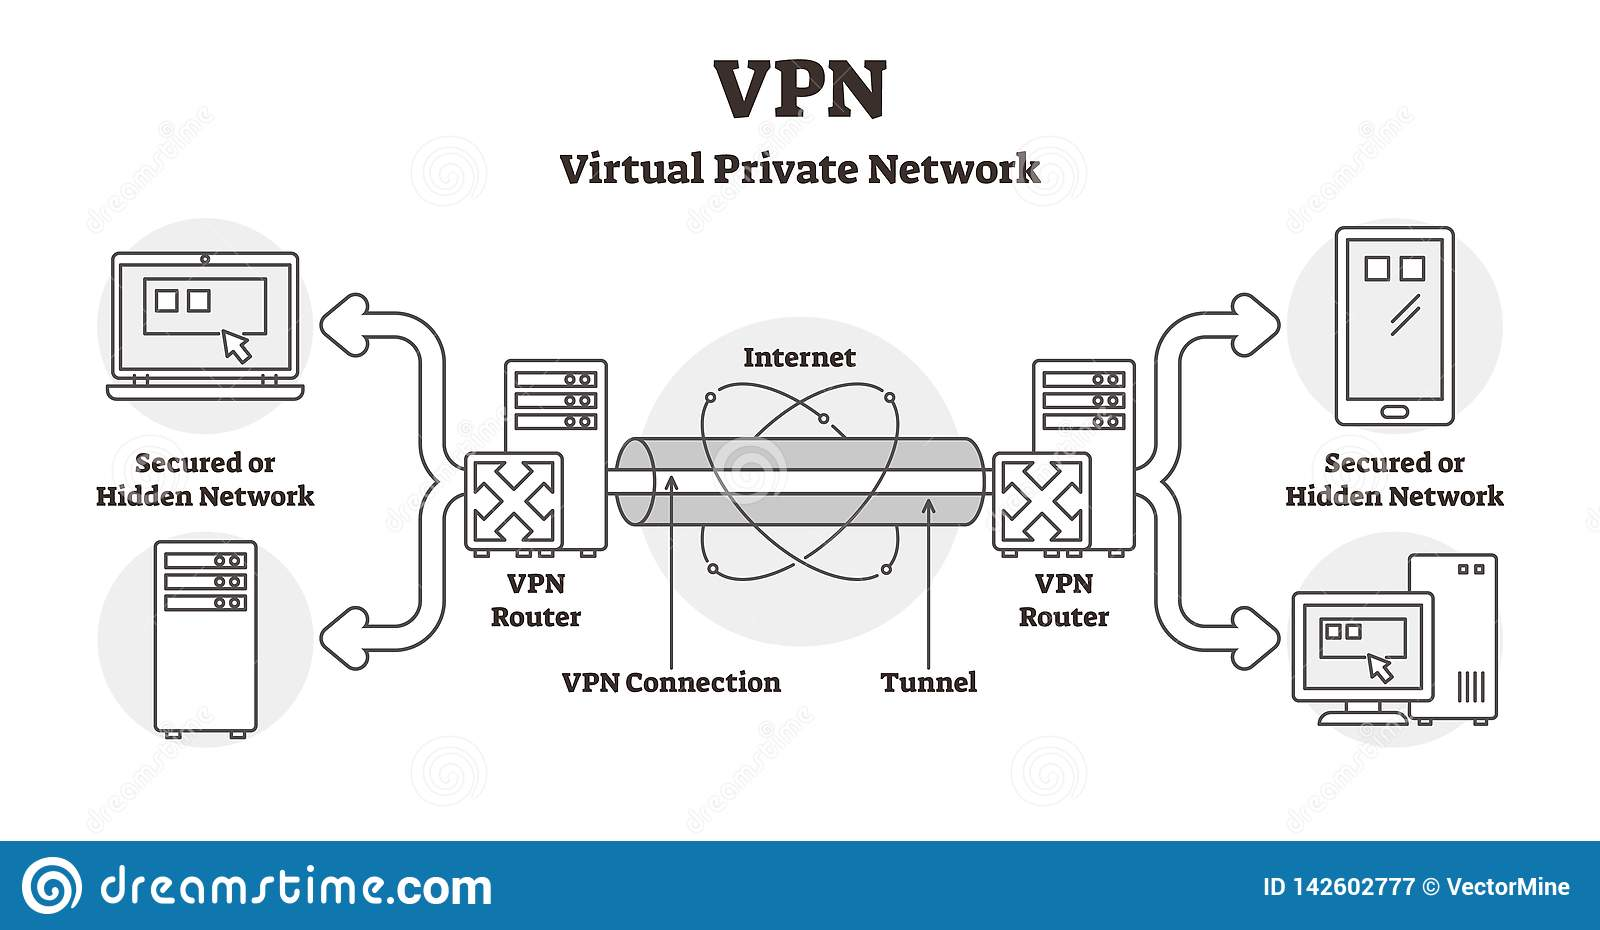 vpn diagram vector illustration  outlined virtual private network lan  scheme  secured hidden internet connection using locked tunnel and router